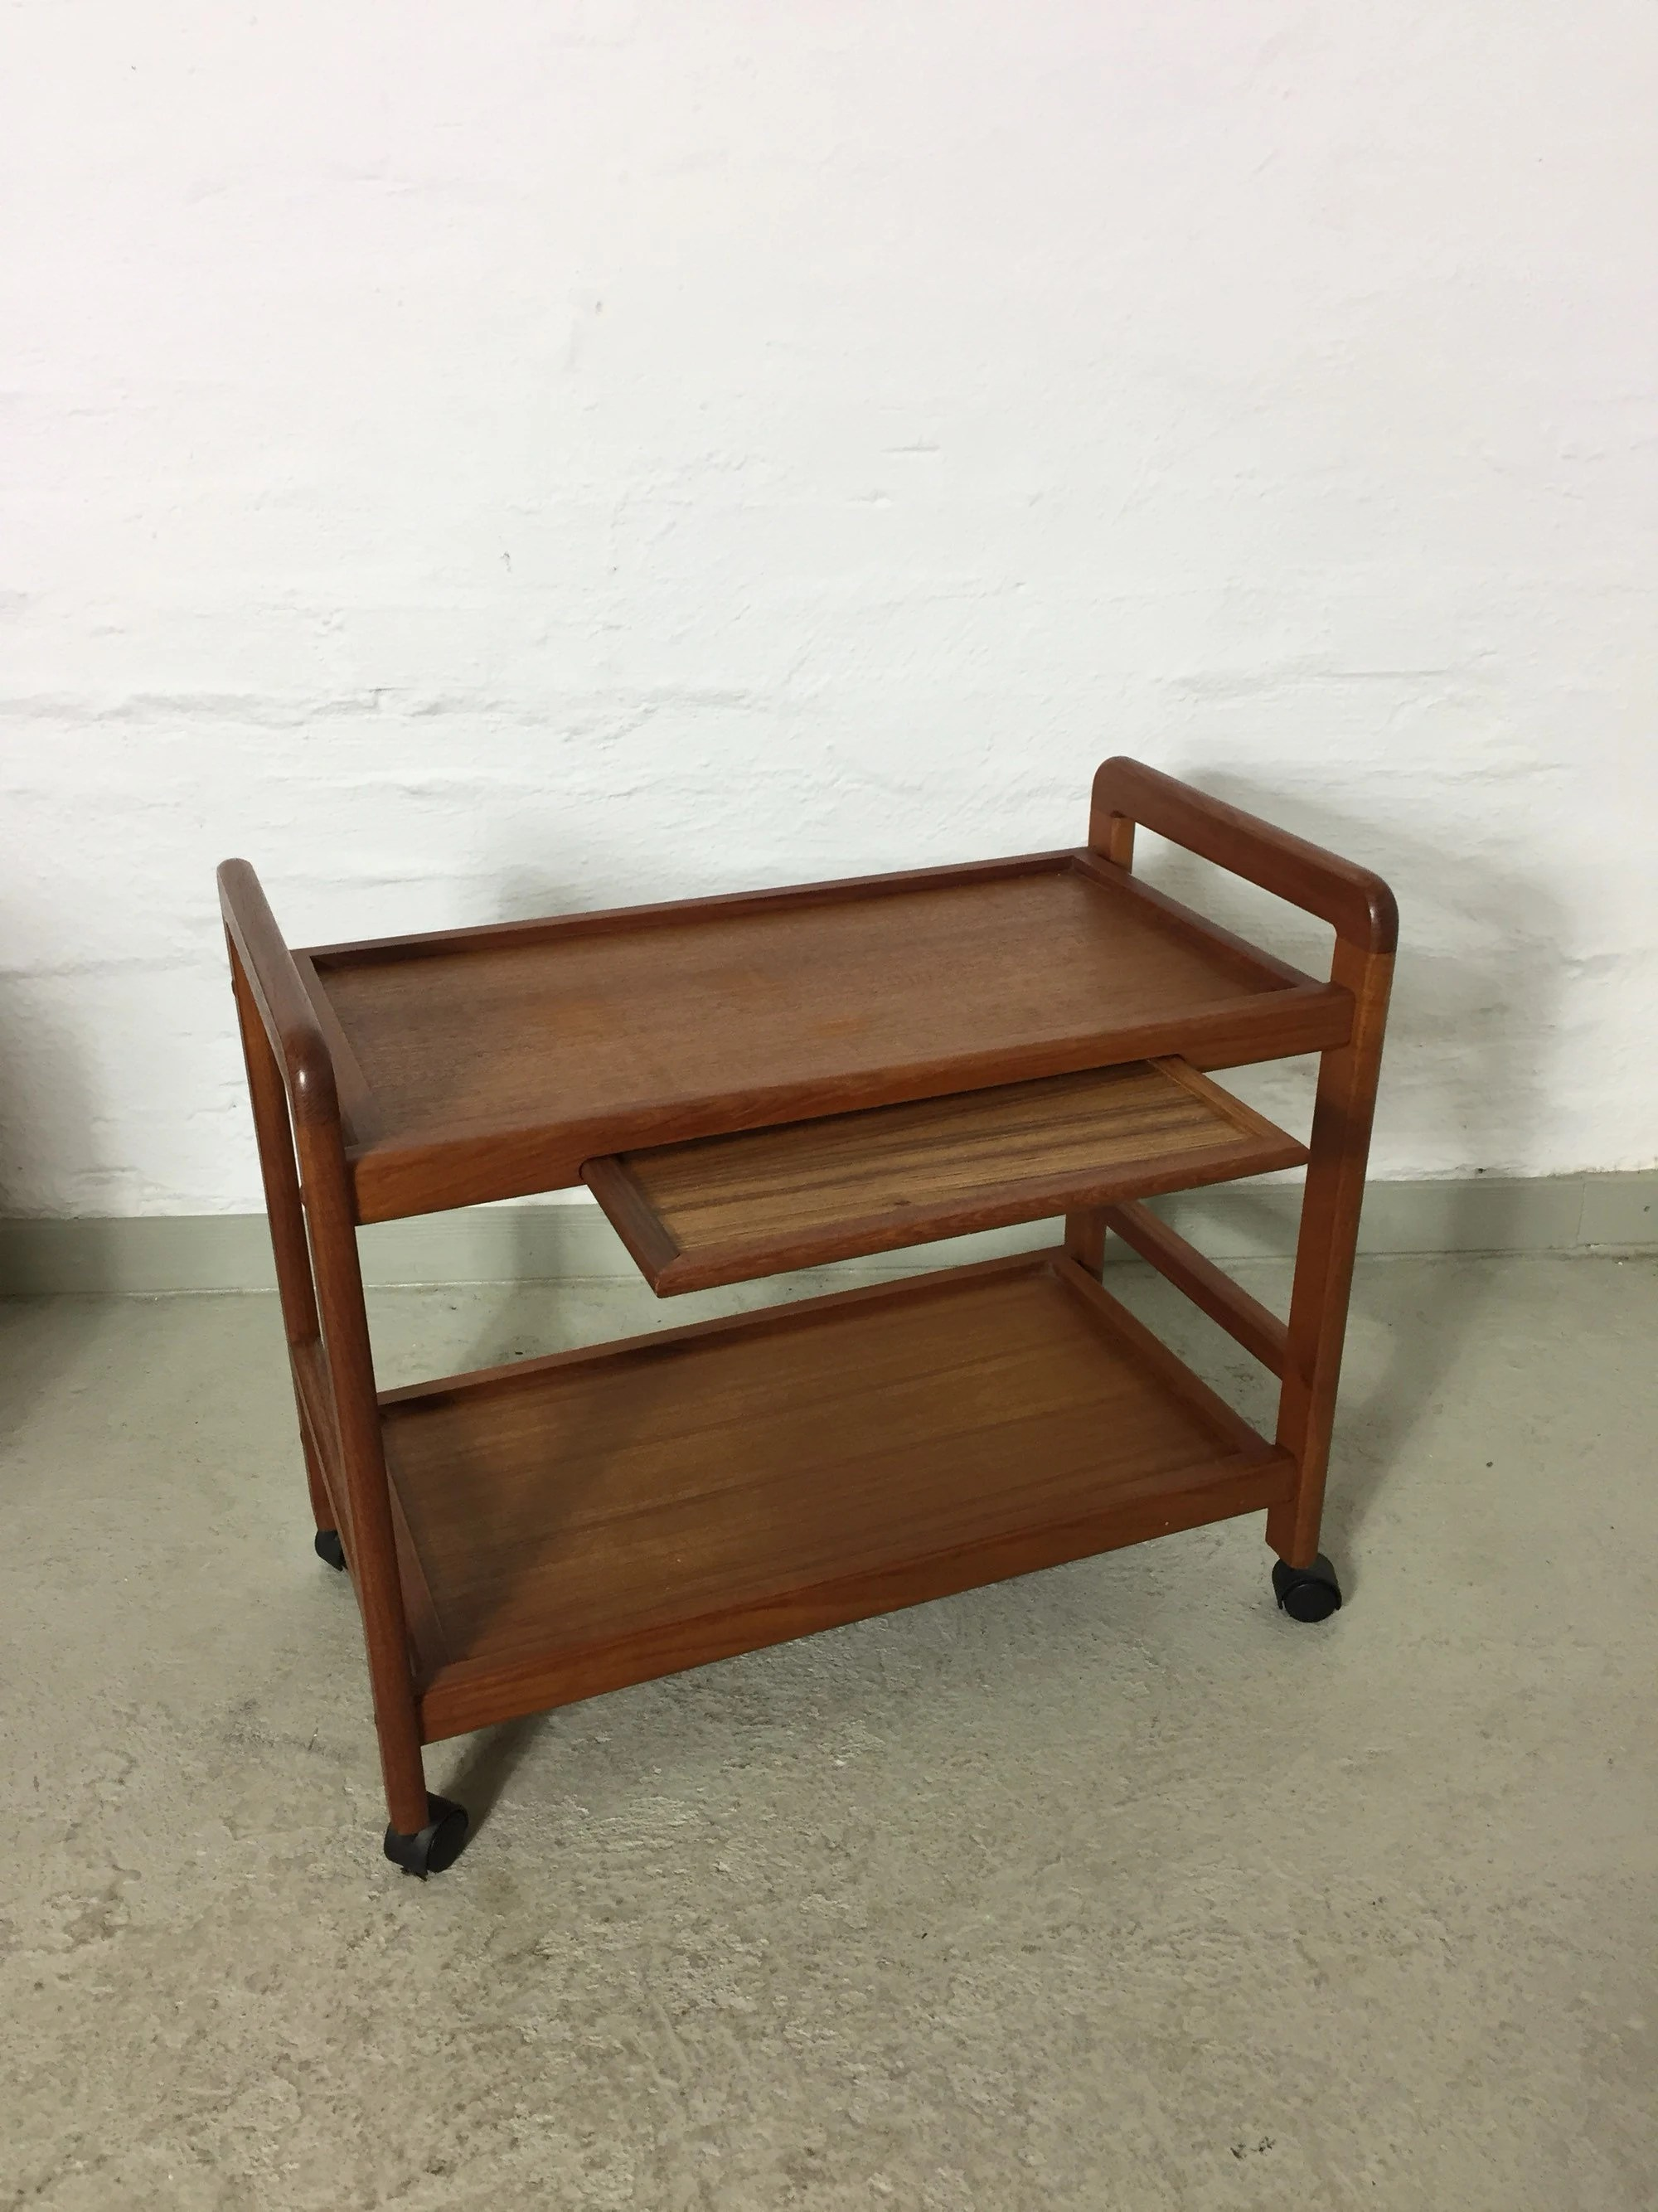 Teakholz Zoll Tea Trolley Van Teak 60 He Danish Design Vintage Teak Trolley Serving Trolley